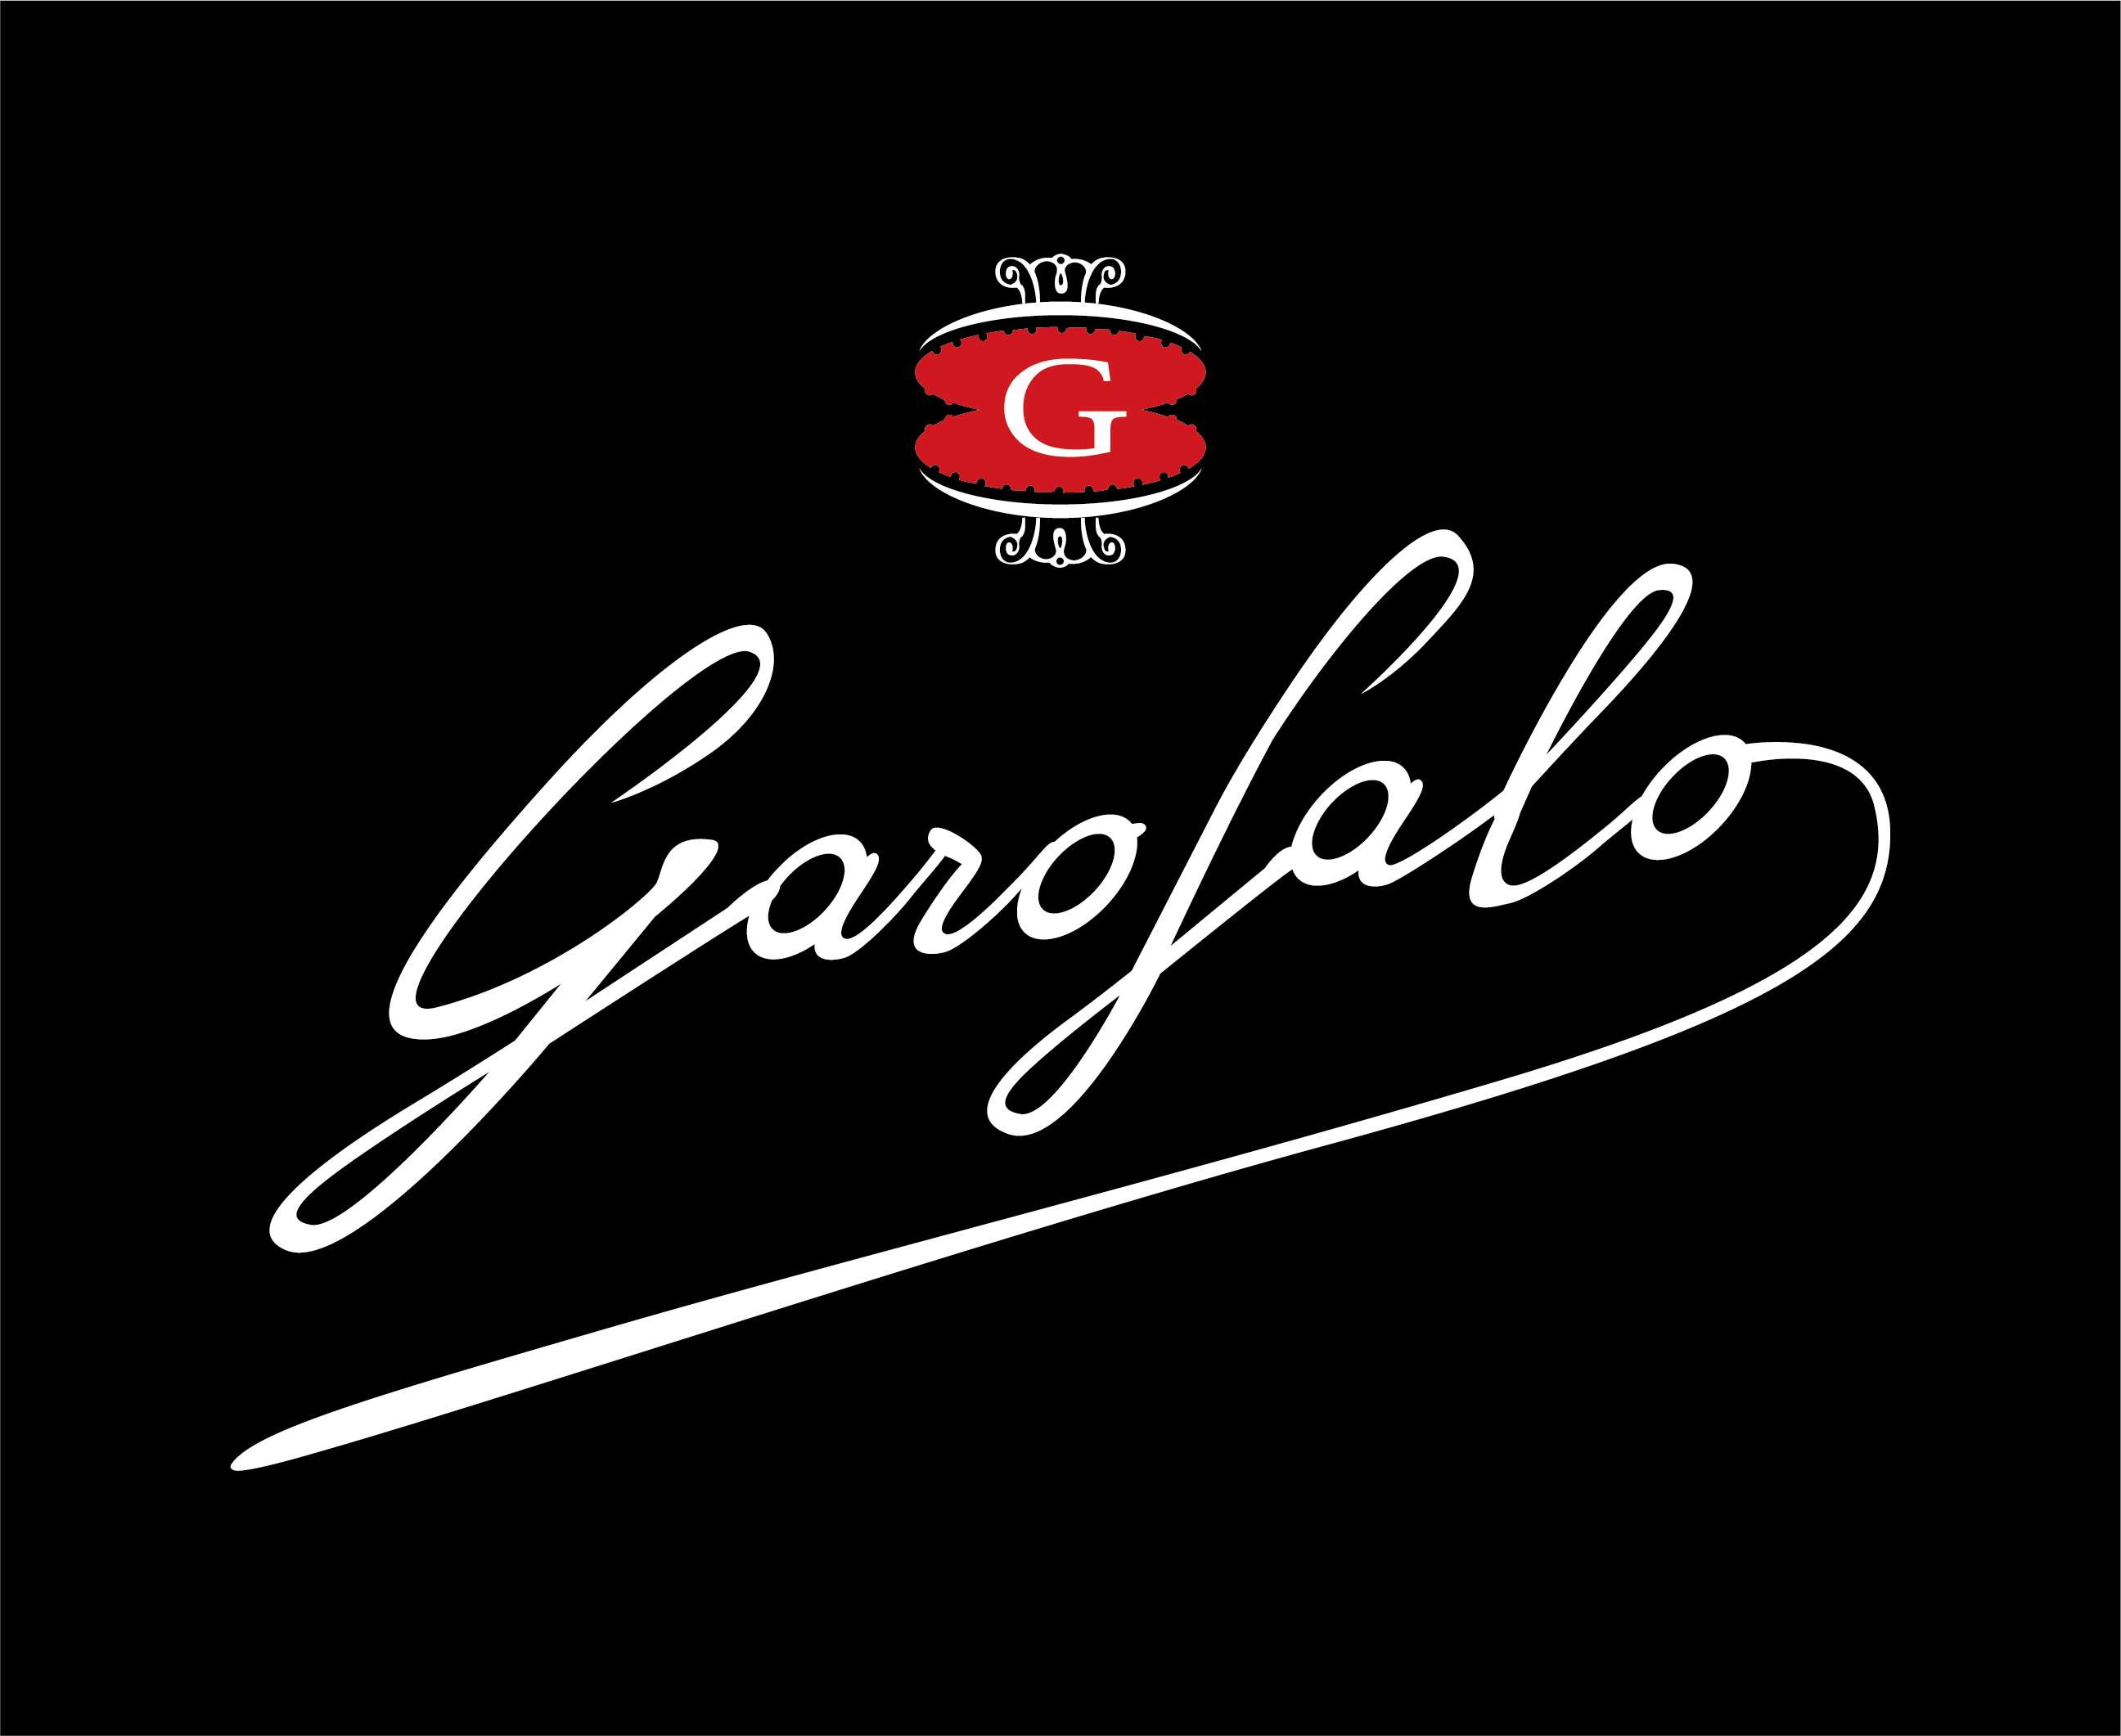 Garofalo Signature Logo White on black transparent